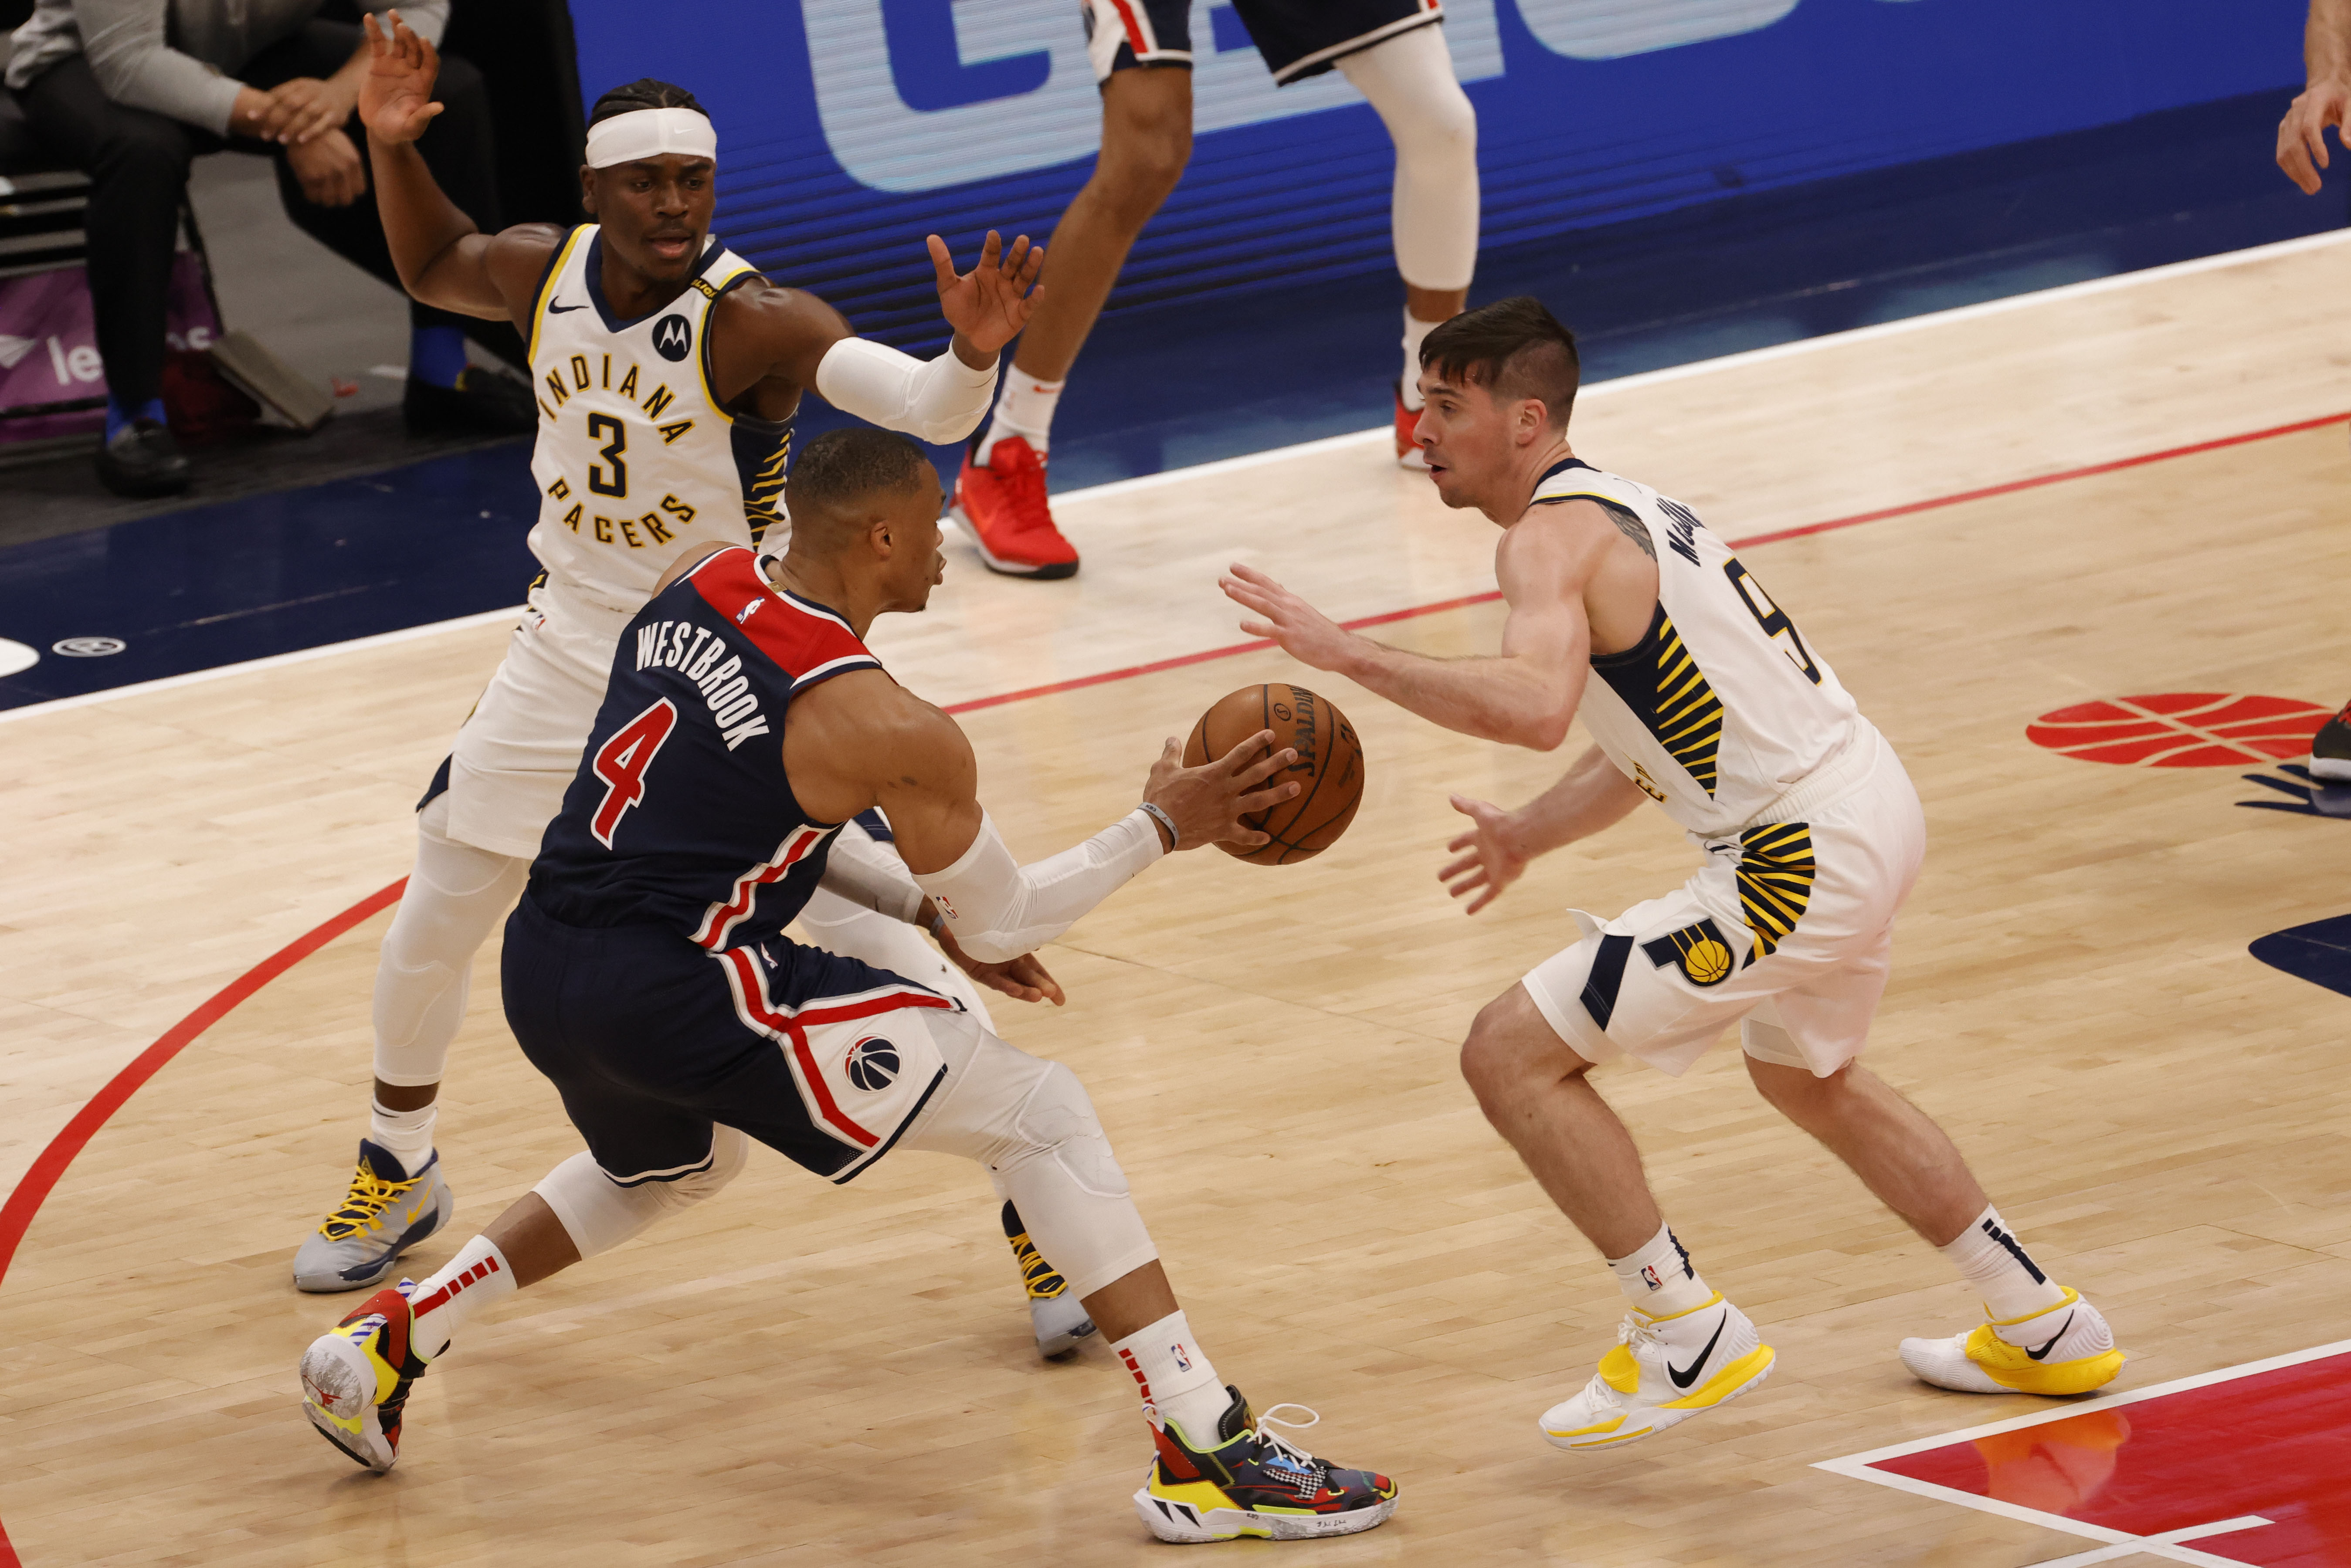 May 3, 2021; Washington, District of Columbia, USA; Washington Wizards guard Russell Westbrook (4) passes the ball as Indiana Pacers guard Aaron Holiday (3) and Pacers guard T.J. McConnell (9) defend in the third quarter at Capital One Arena. Mandatory Credit: Geoff Burke-USA TODAY Sports